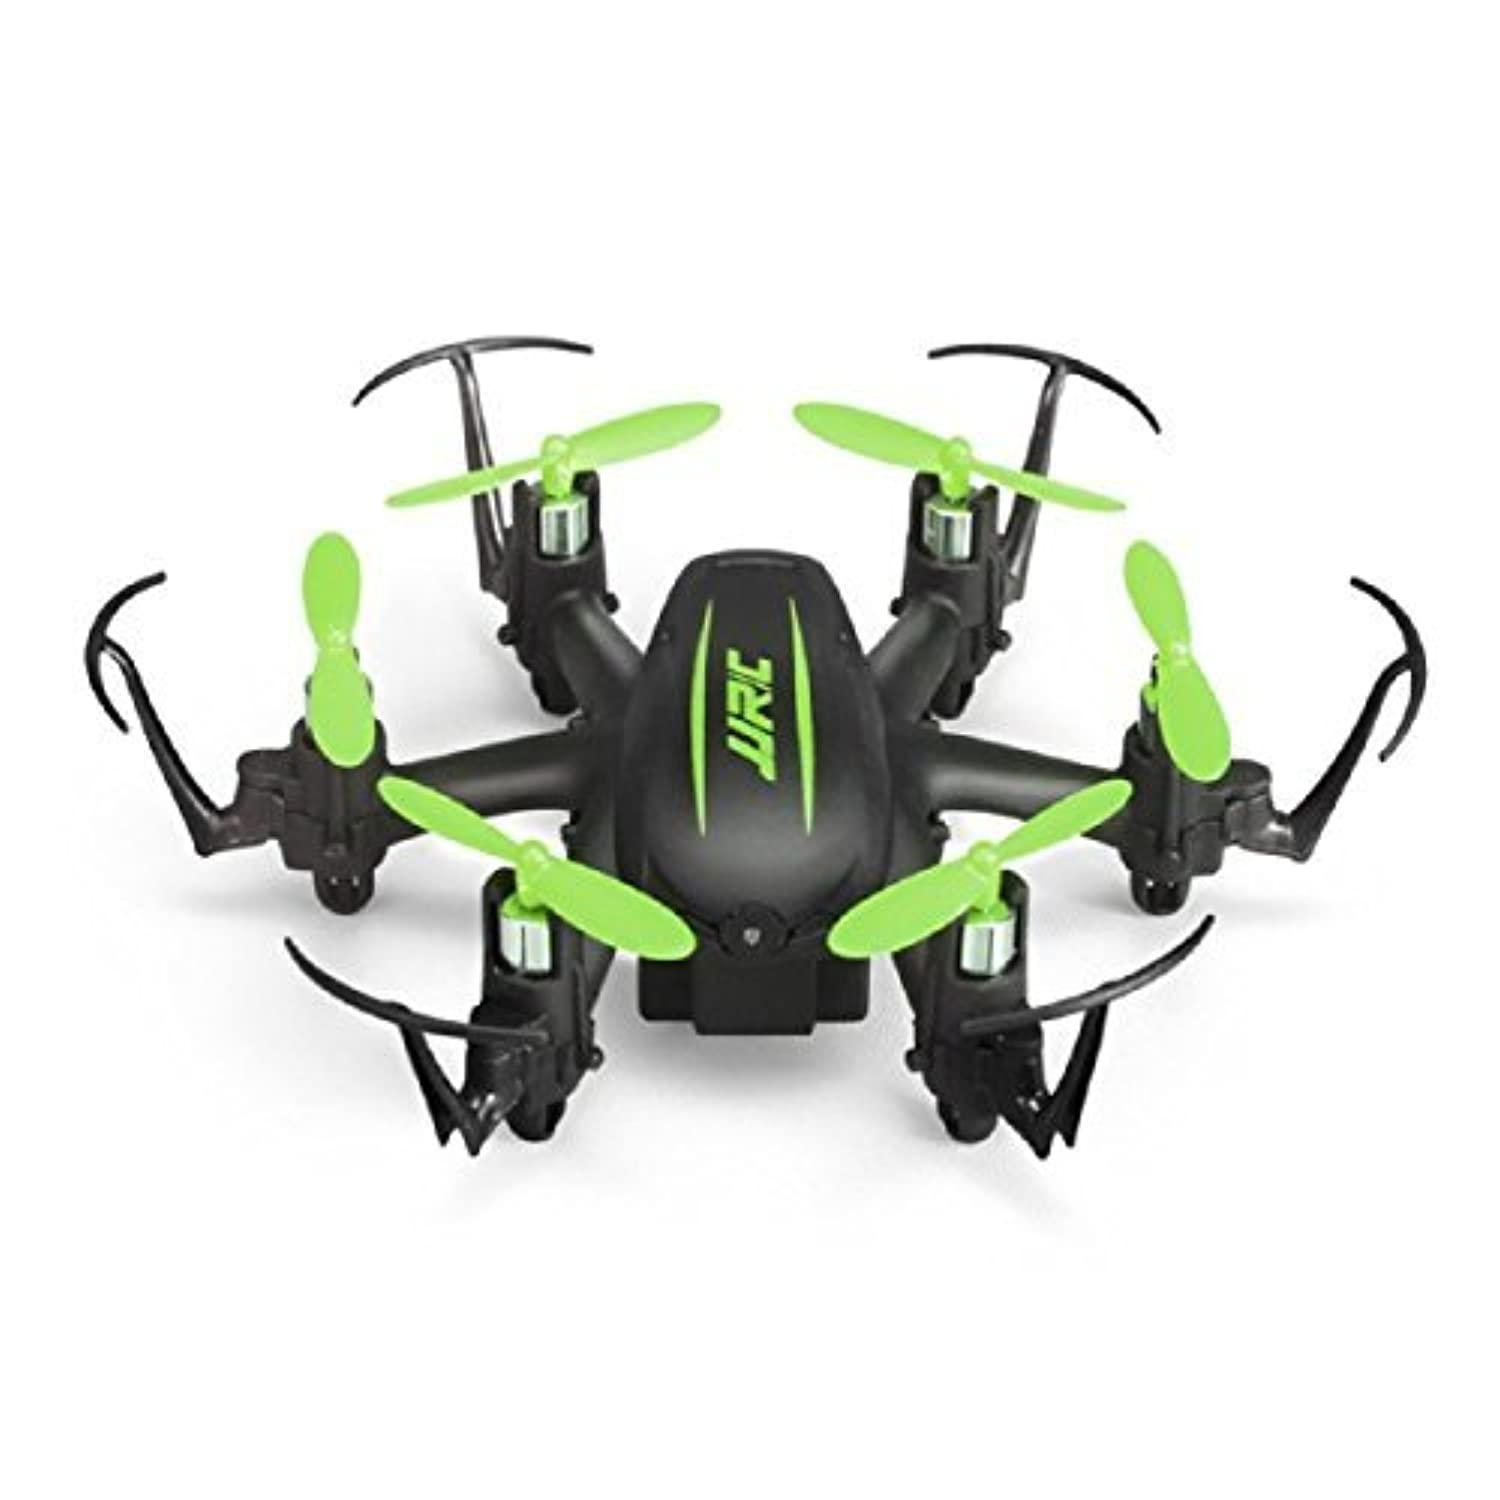 CEStore? H20C 3D Roll Mini Drone with 2.0MP Camera, H20 Upgrade RTF, 2.4G Remote Control, Headless Mode, One Key Return, Dazzling Night Navigation Light, 4 Channels 6 Axle Gyro RC Helicopter - Green [並行輸入品]